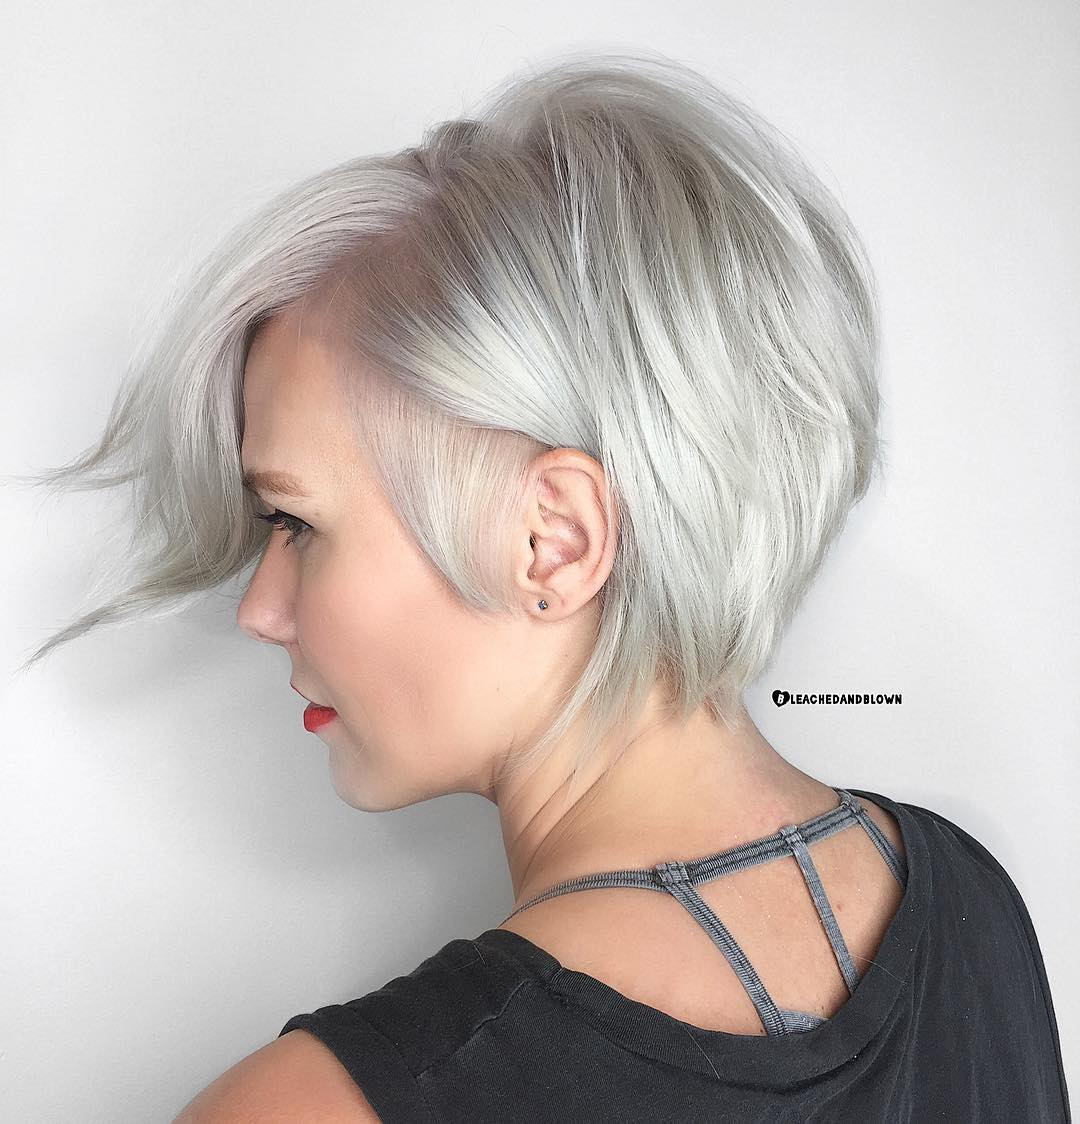 Hair Styles For Very Fine Hair: 100 Mind-Blowing Short Hairstyles For Fine Hair